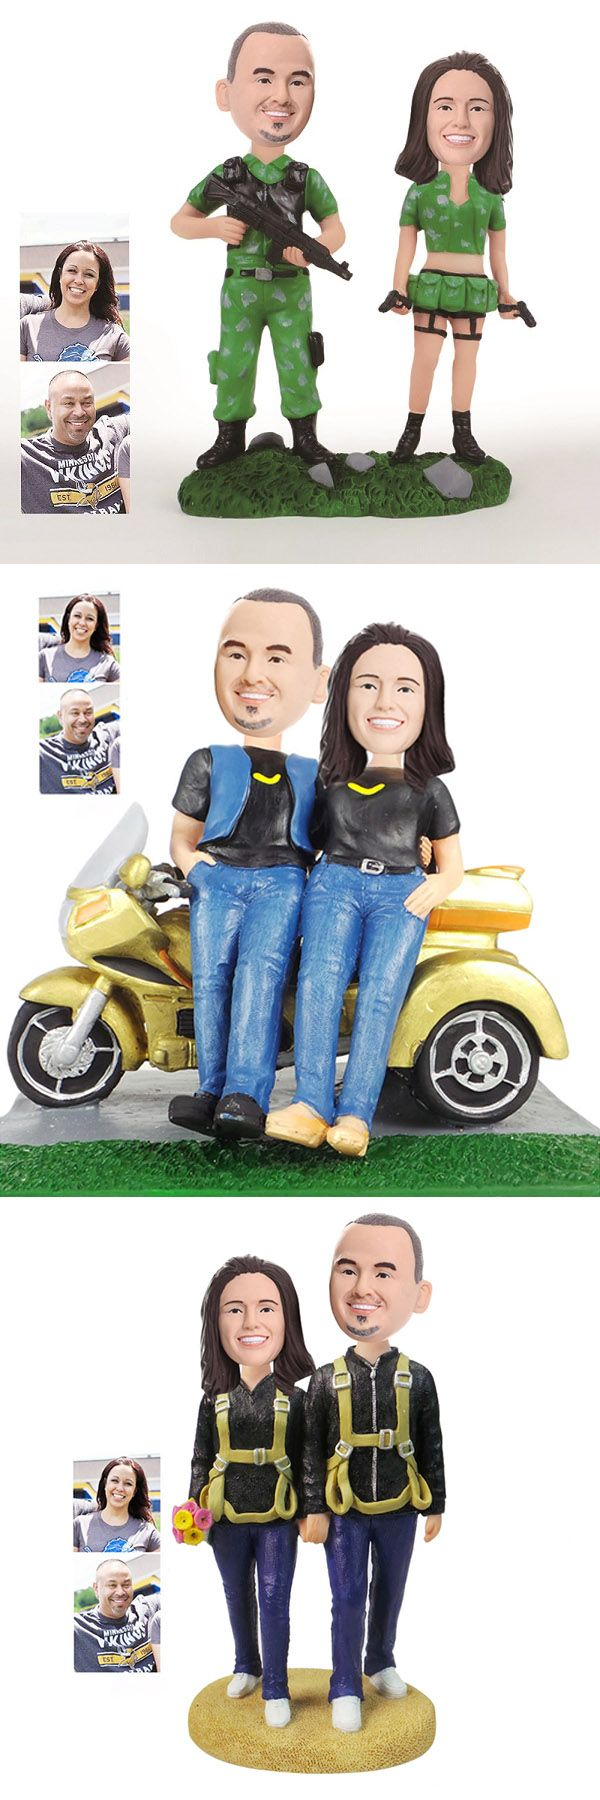 casual and sport wedding cake toppers and wedding gifts